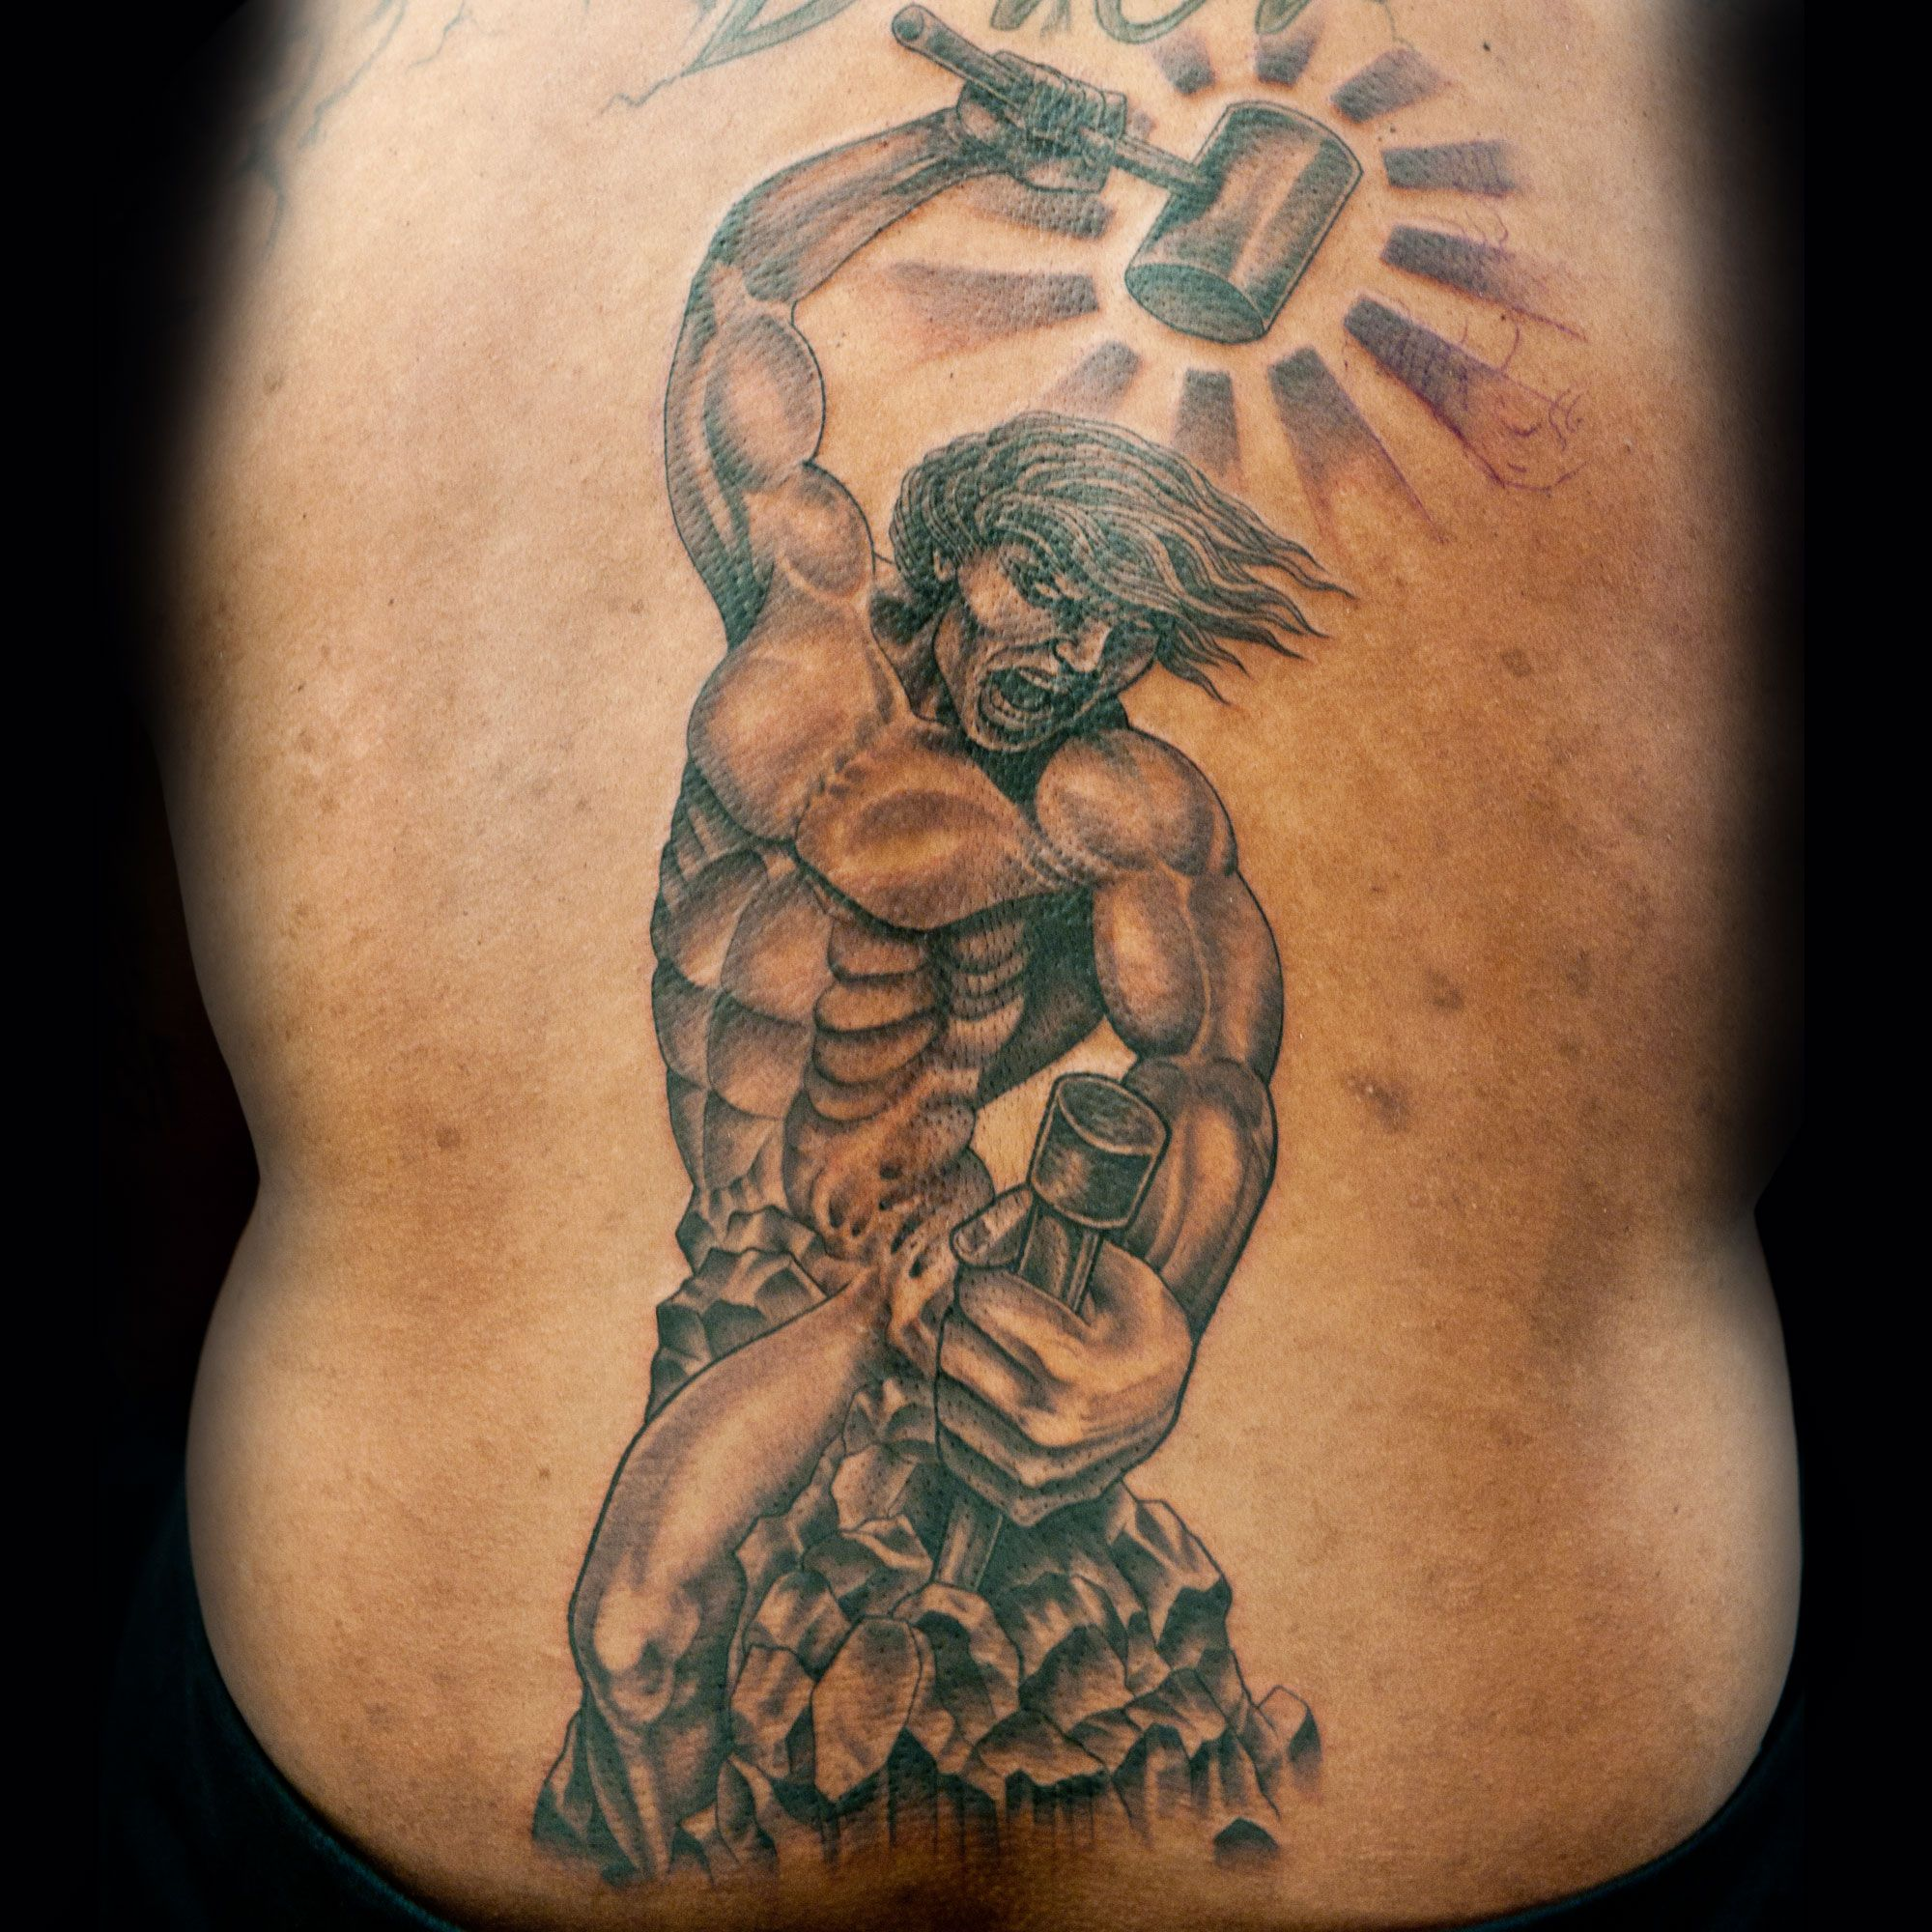 Check out this high res photo of Steve Tefft's tattoo from